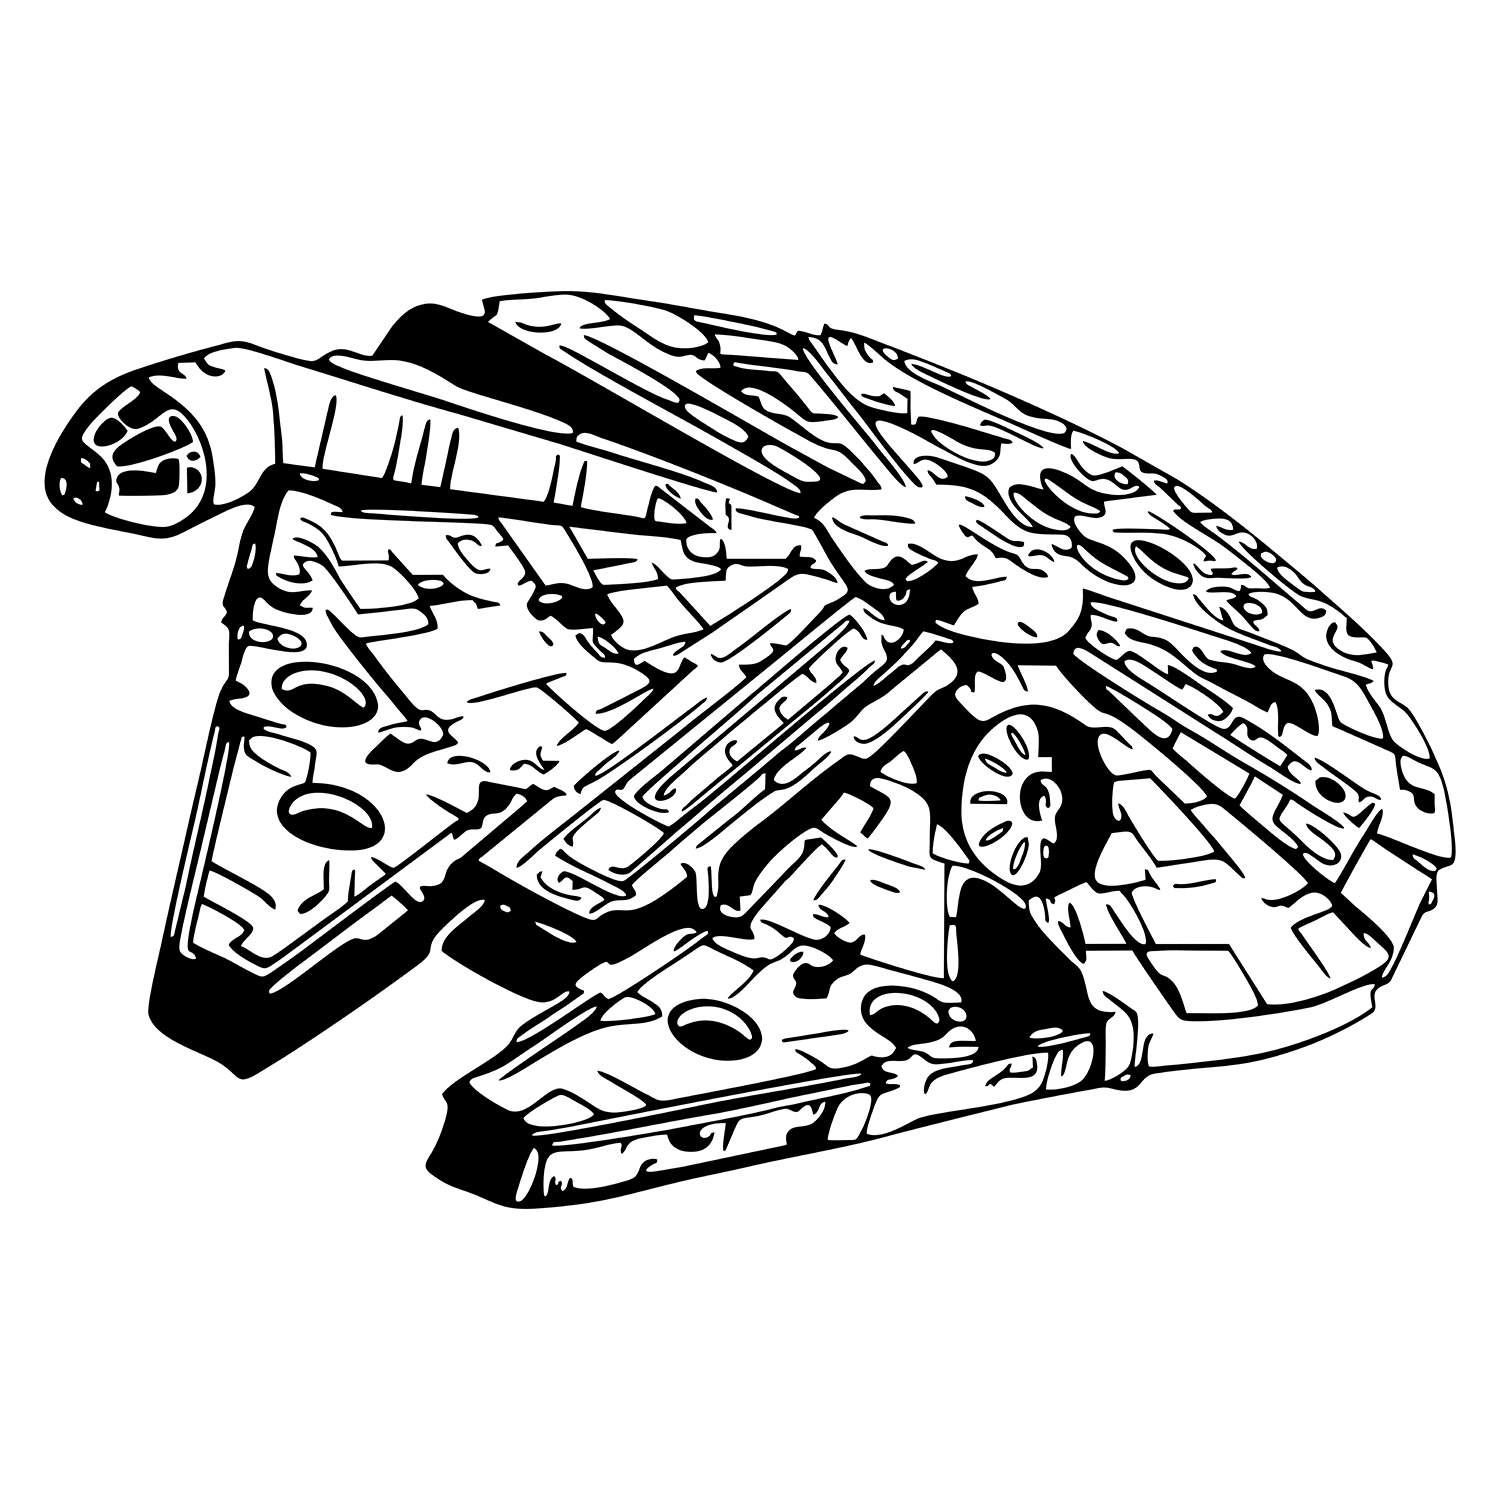 millennium falcon star wars graphics svg dxf eps png cdr ai pdf vector art  clipart instant download d… | star wars stencil, star wars silhouette, star  wars stickers  pinterest